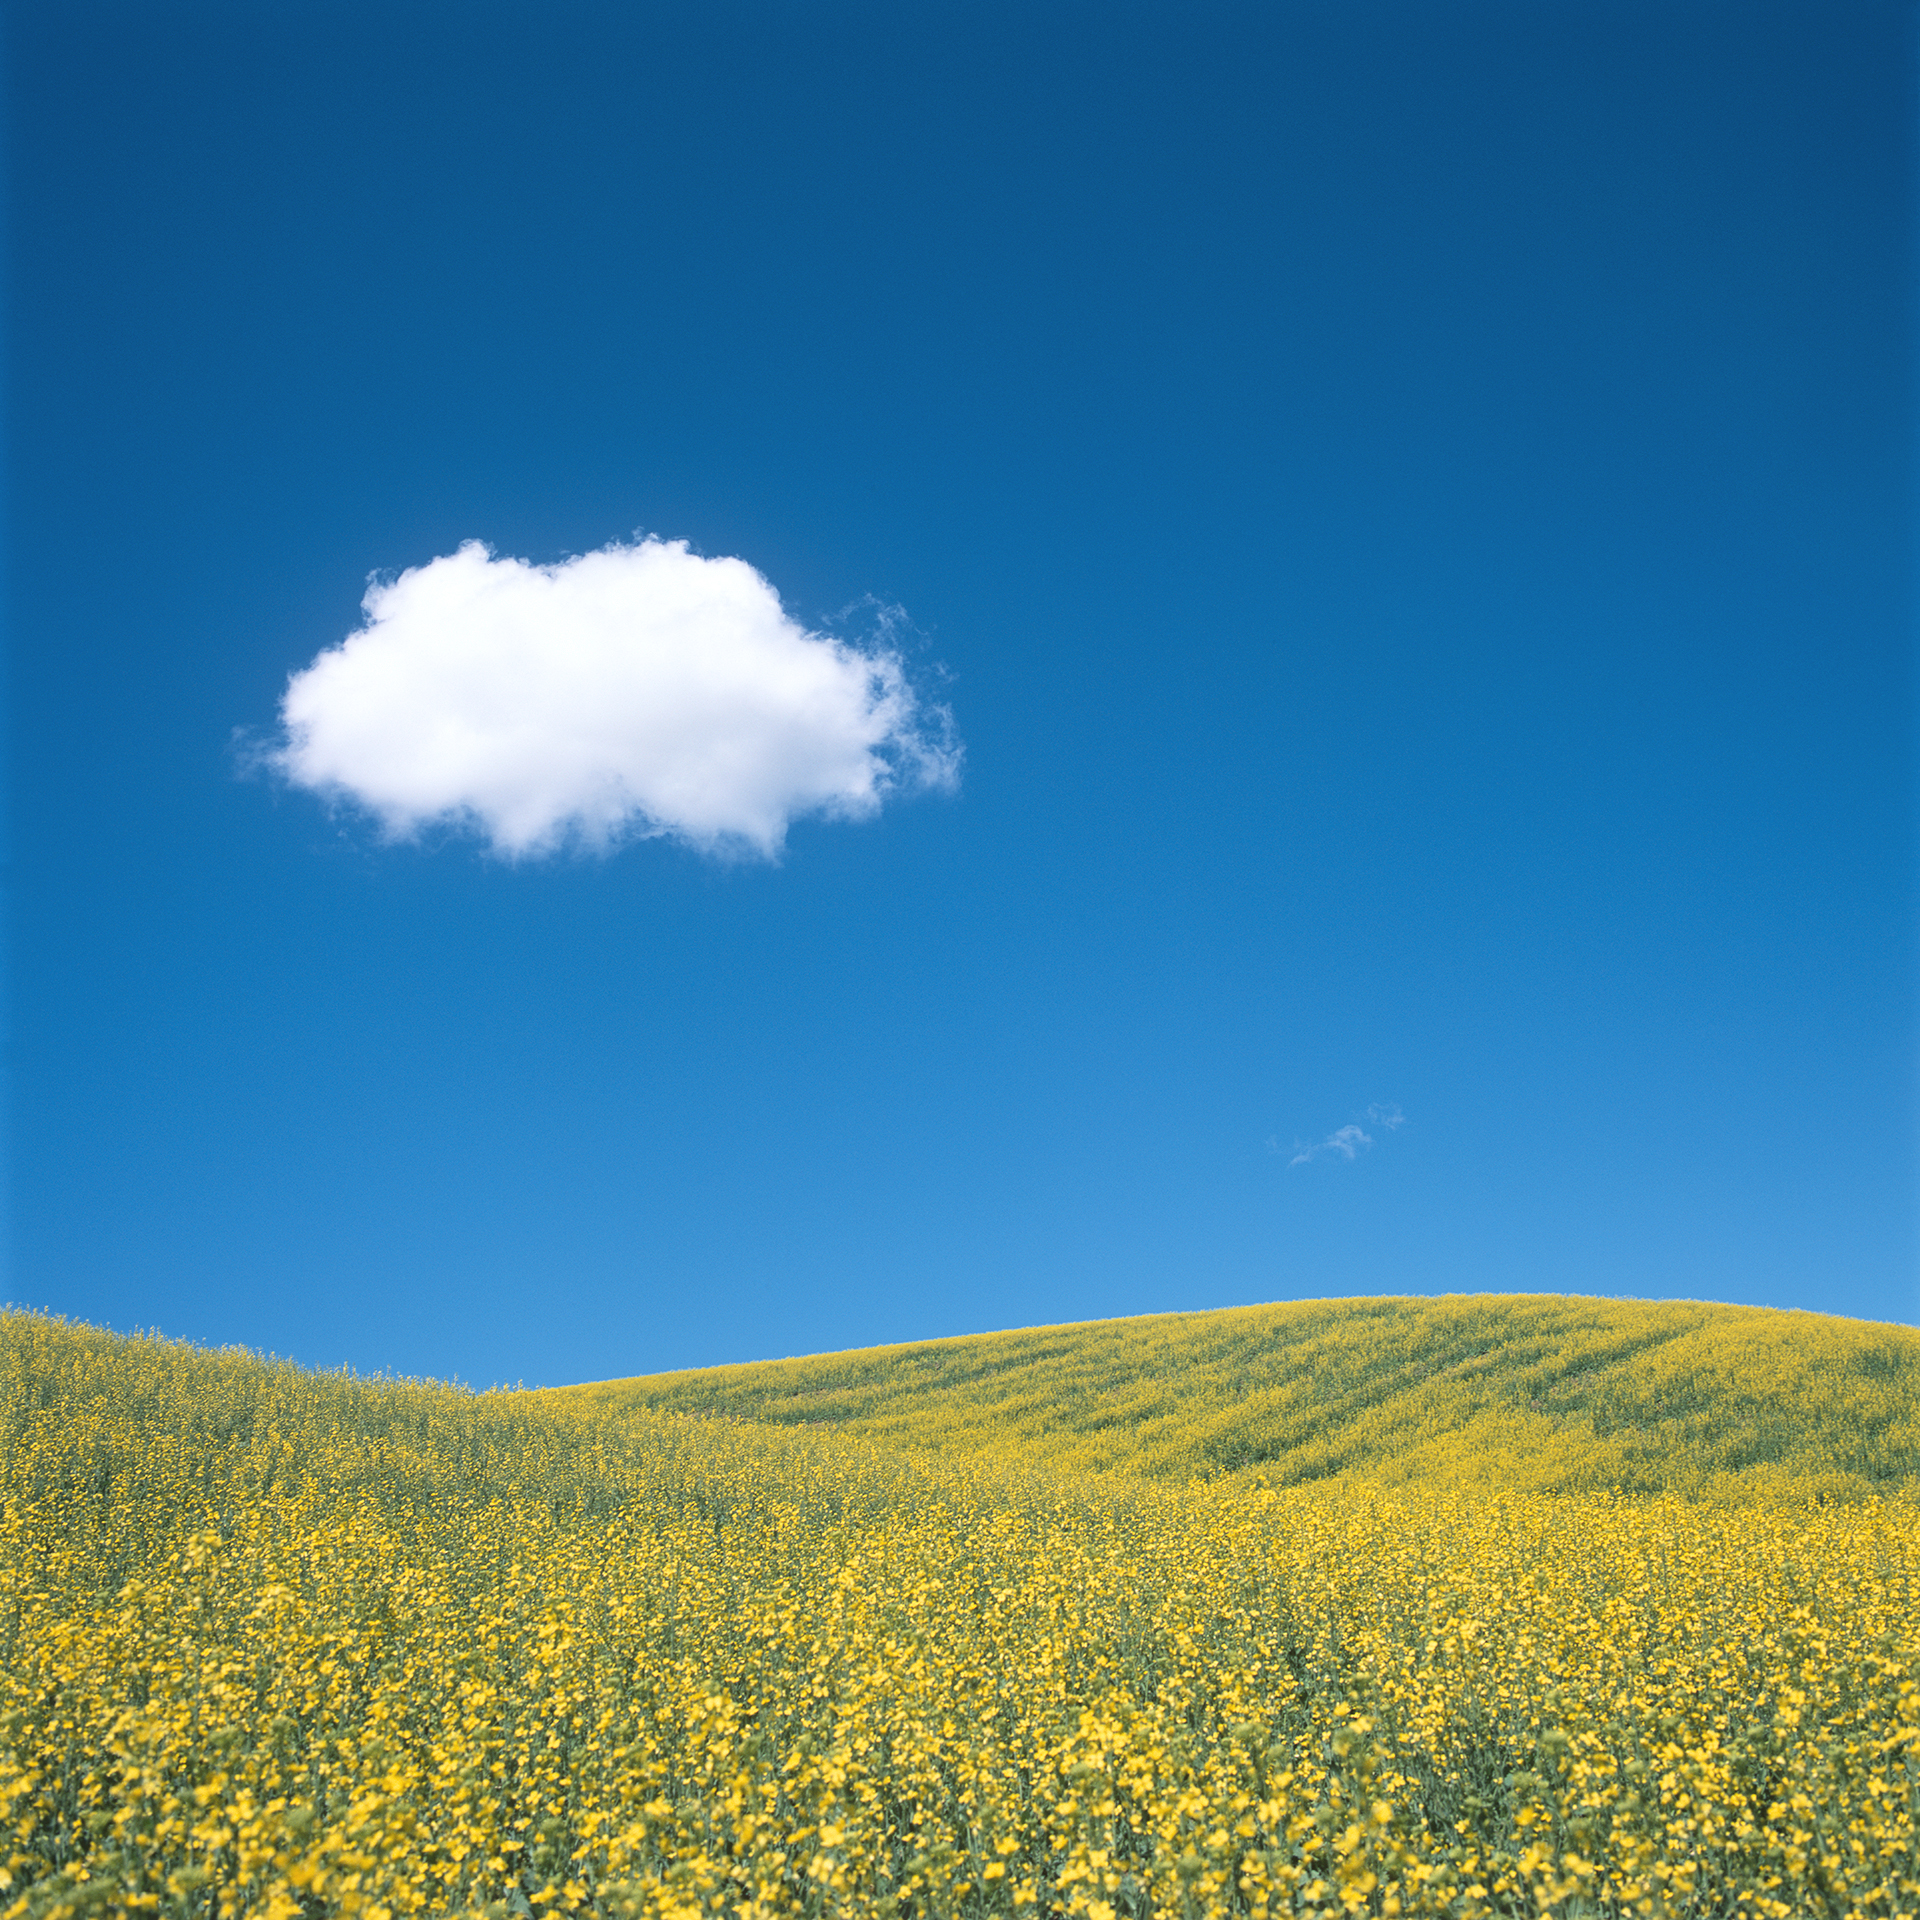 Cloud Over Yellow Hills, 2018